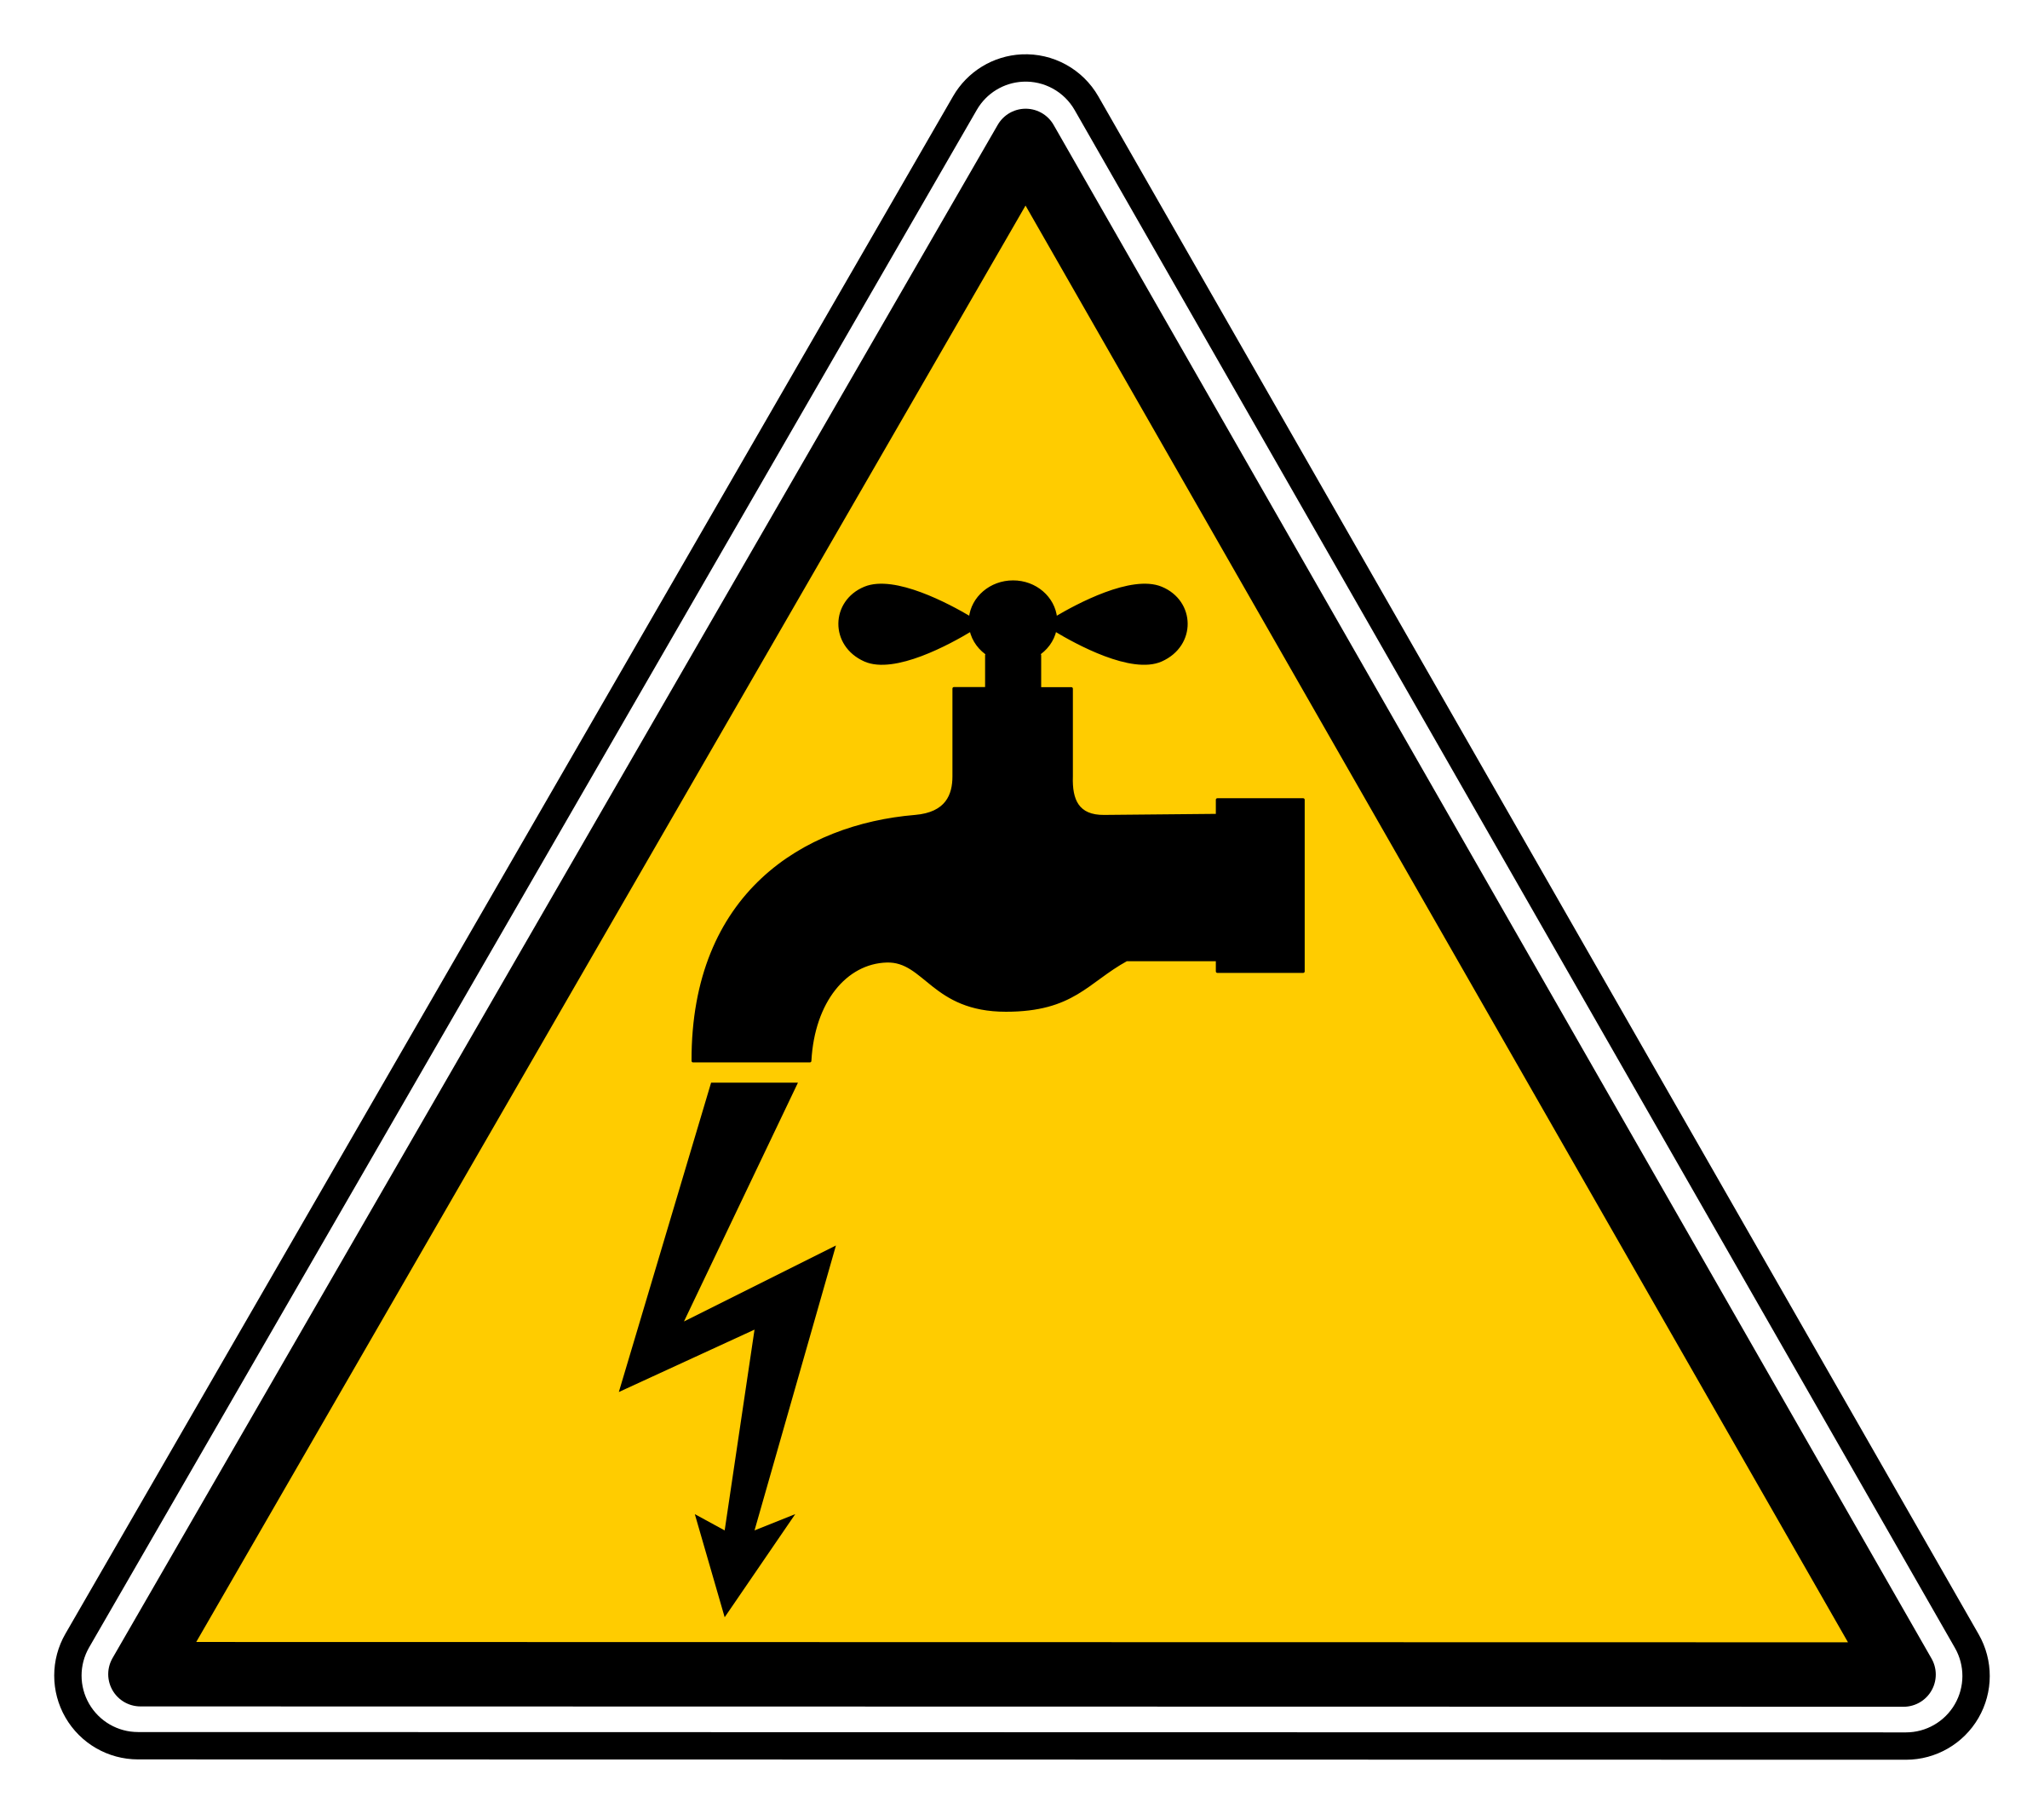 Electrical clipart electrical logo. Danger electric leakage big